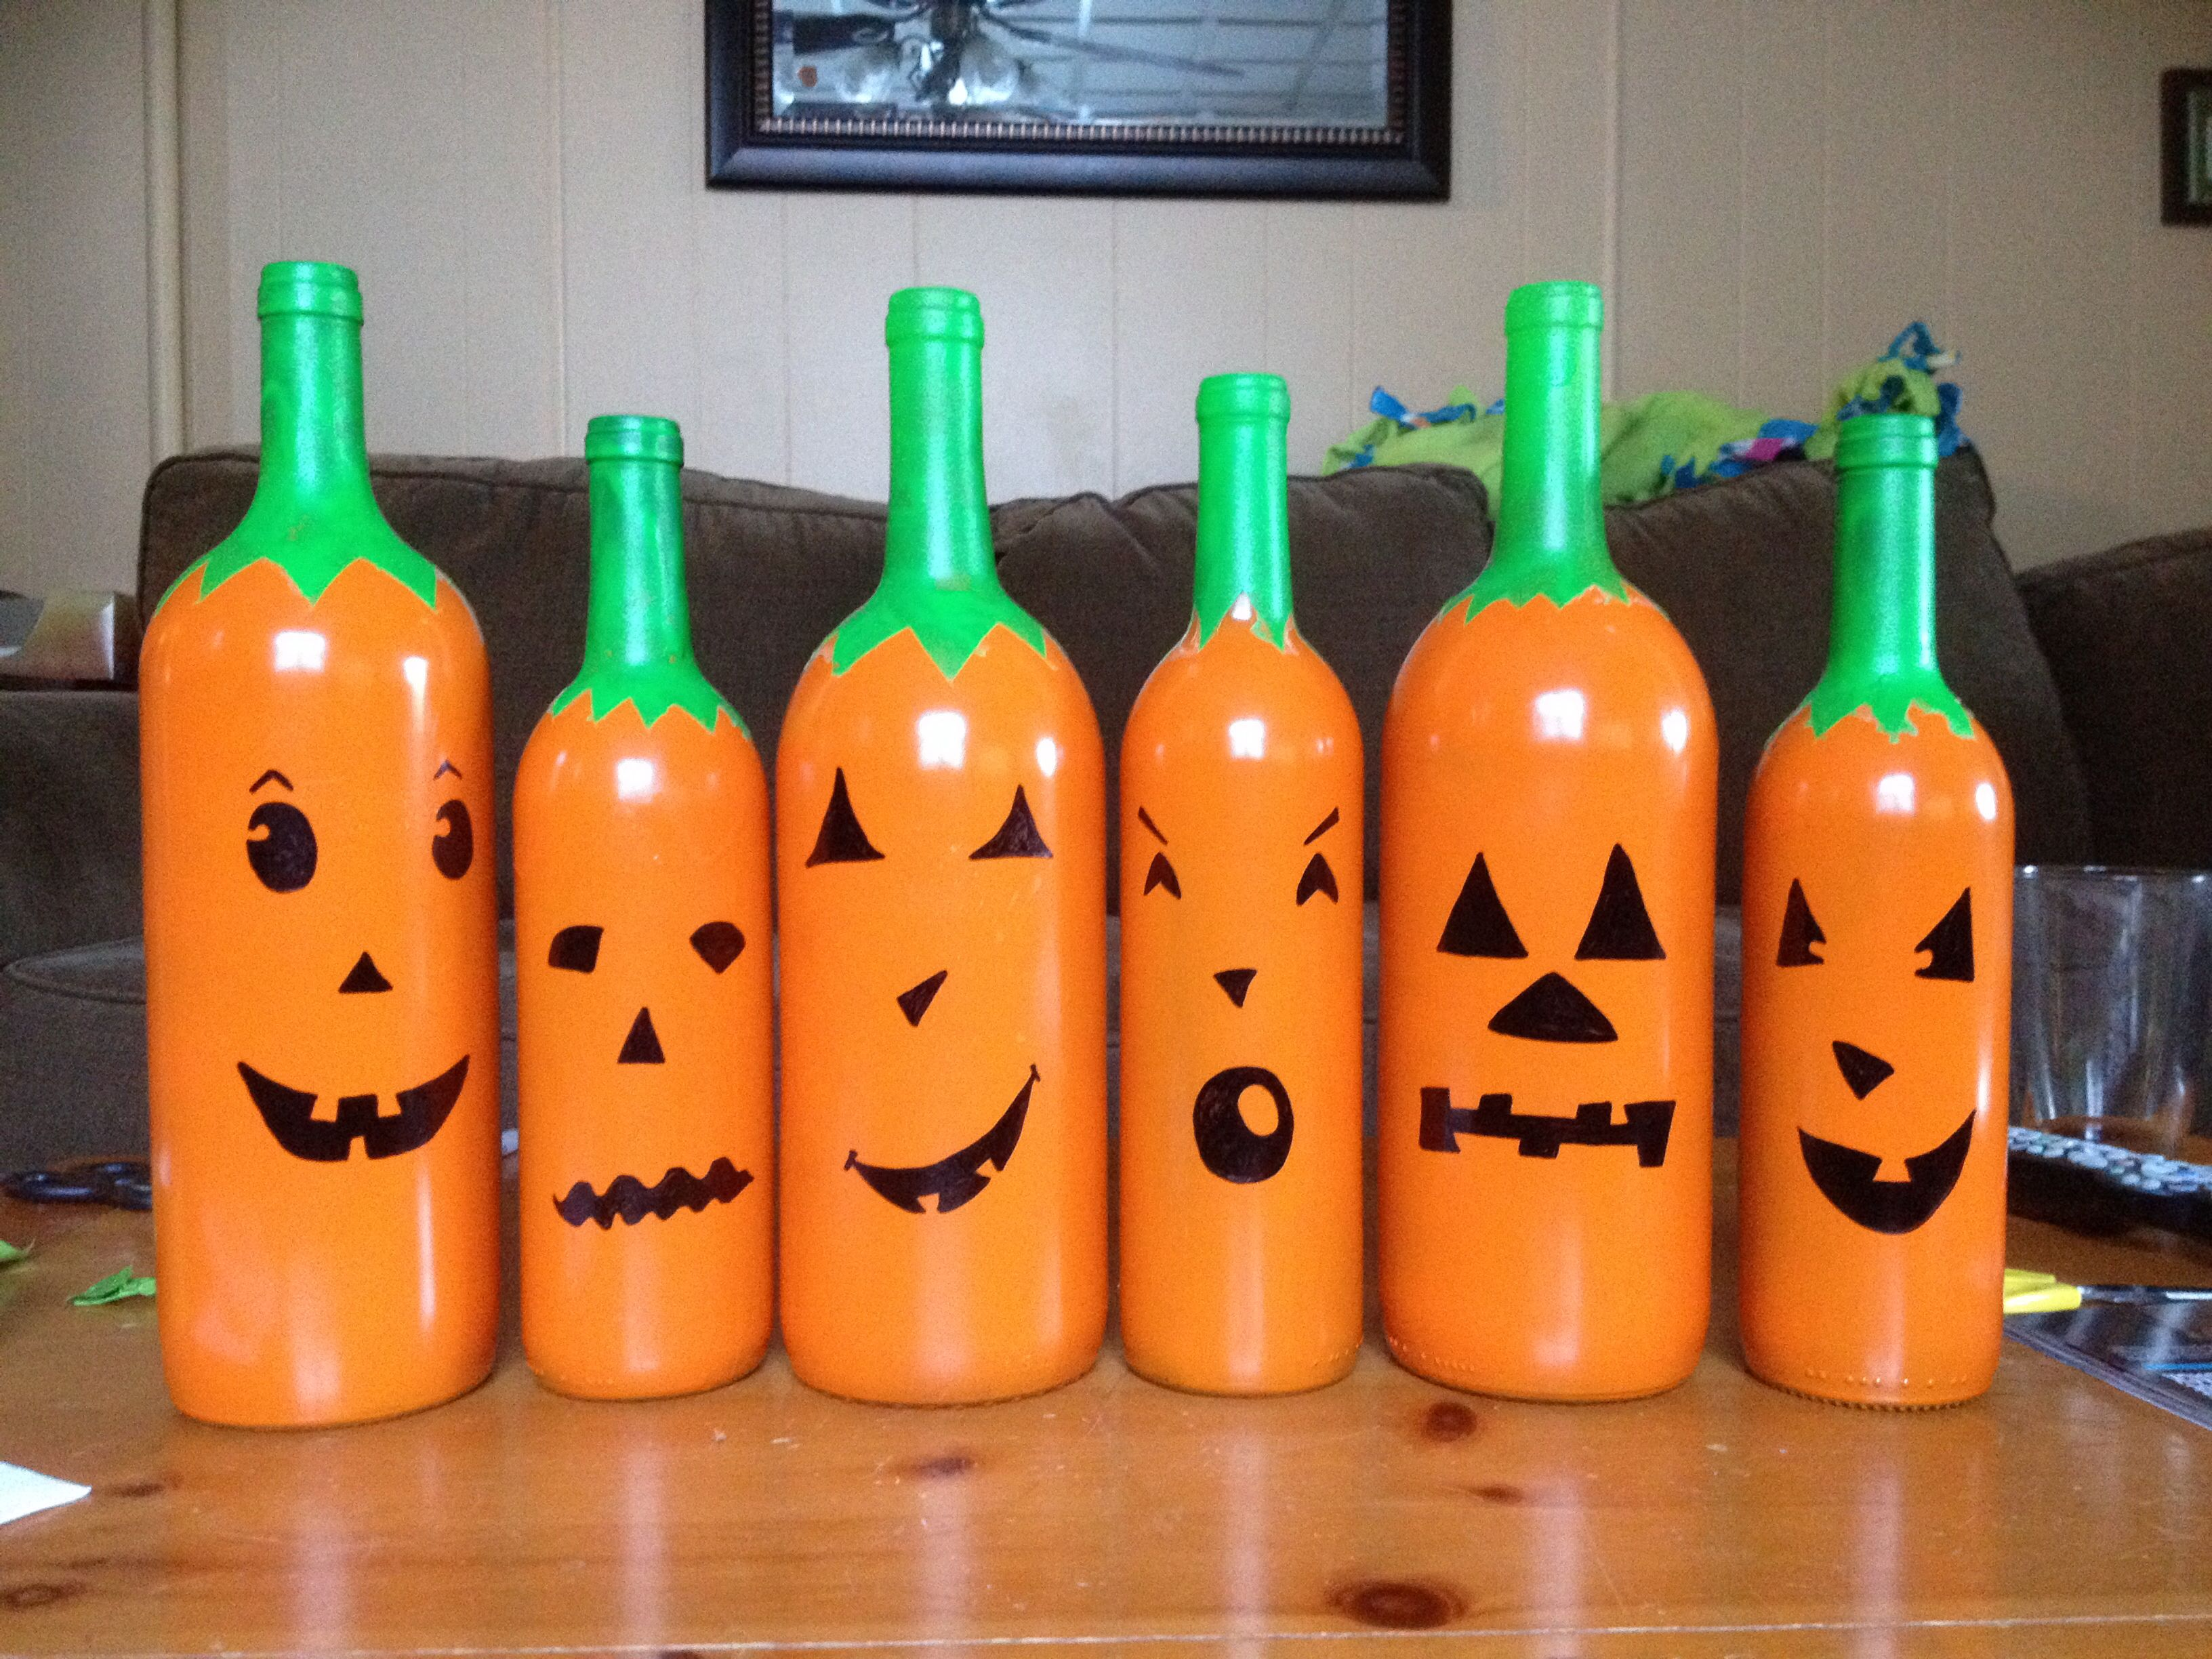 My pumpkin wine bottle project! We can paint wine bottles instead of pumpkins lol!